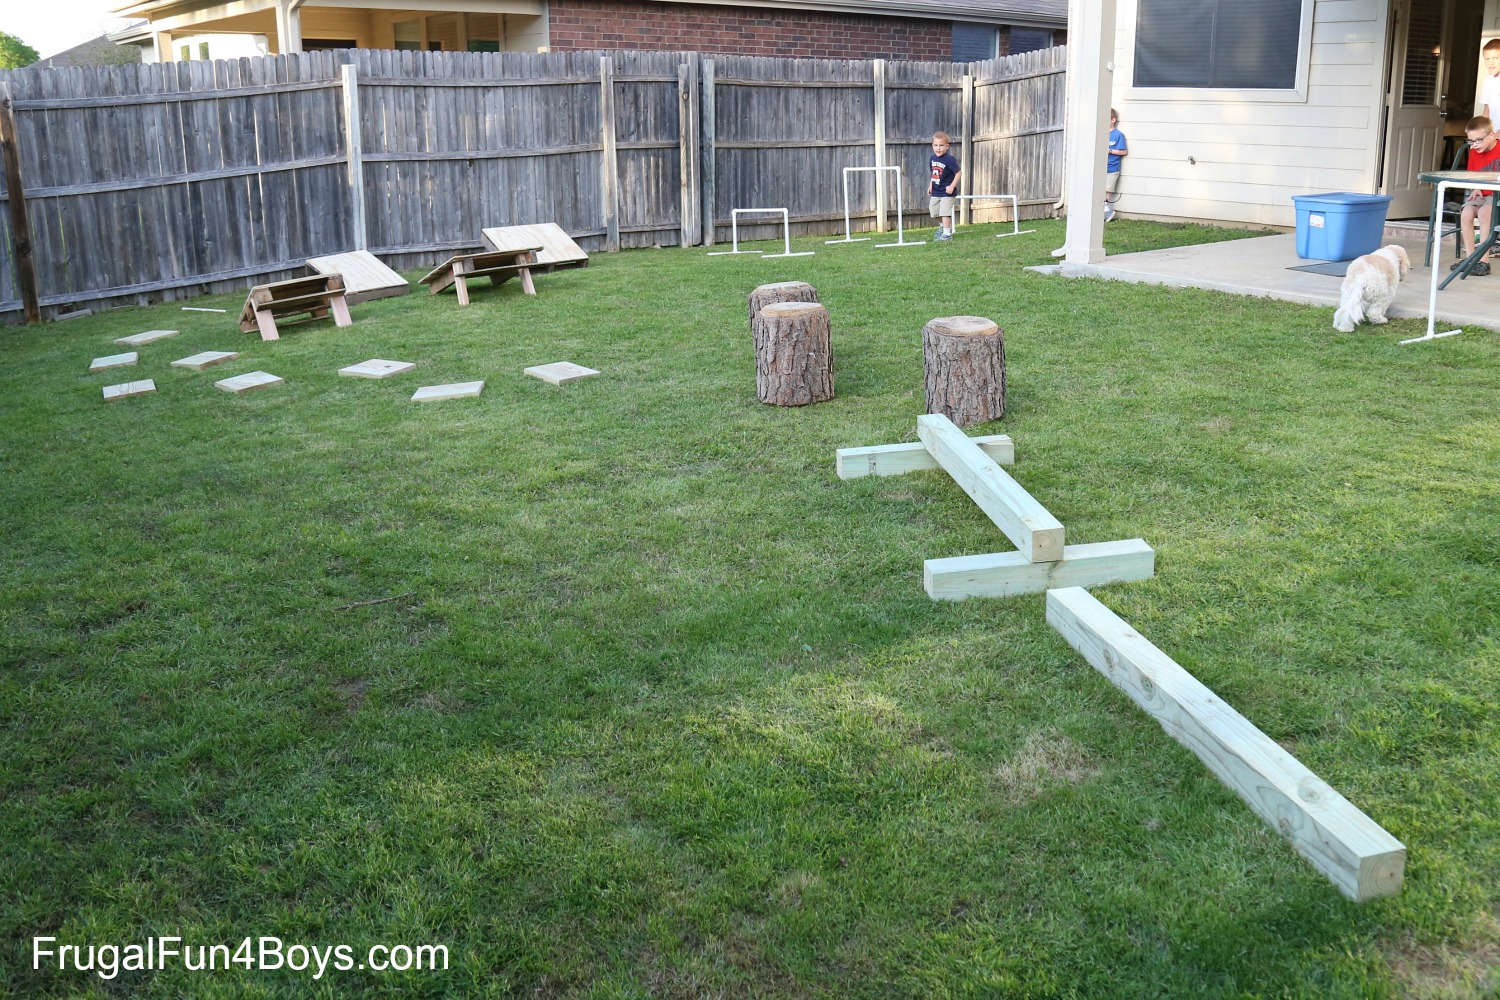 Flagrant Backyard Obstacle Course American Ninja Warrior Can Be Rebuiltdifferent Diy American Ninja Warrior Backyard Obstacle Course Backyard Diy Wedding Ideas Backyard Diy Ideas Pinterest outdoor Backyard Diy Ideas